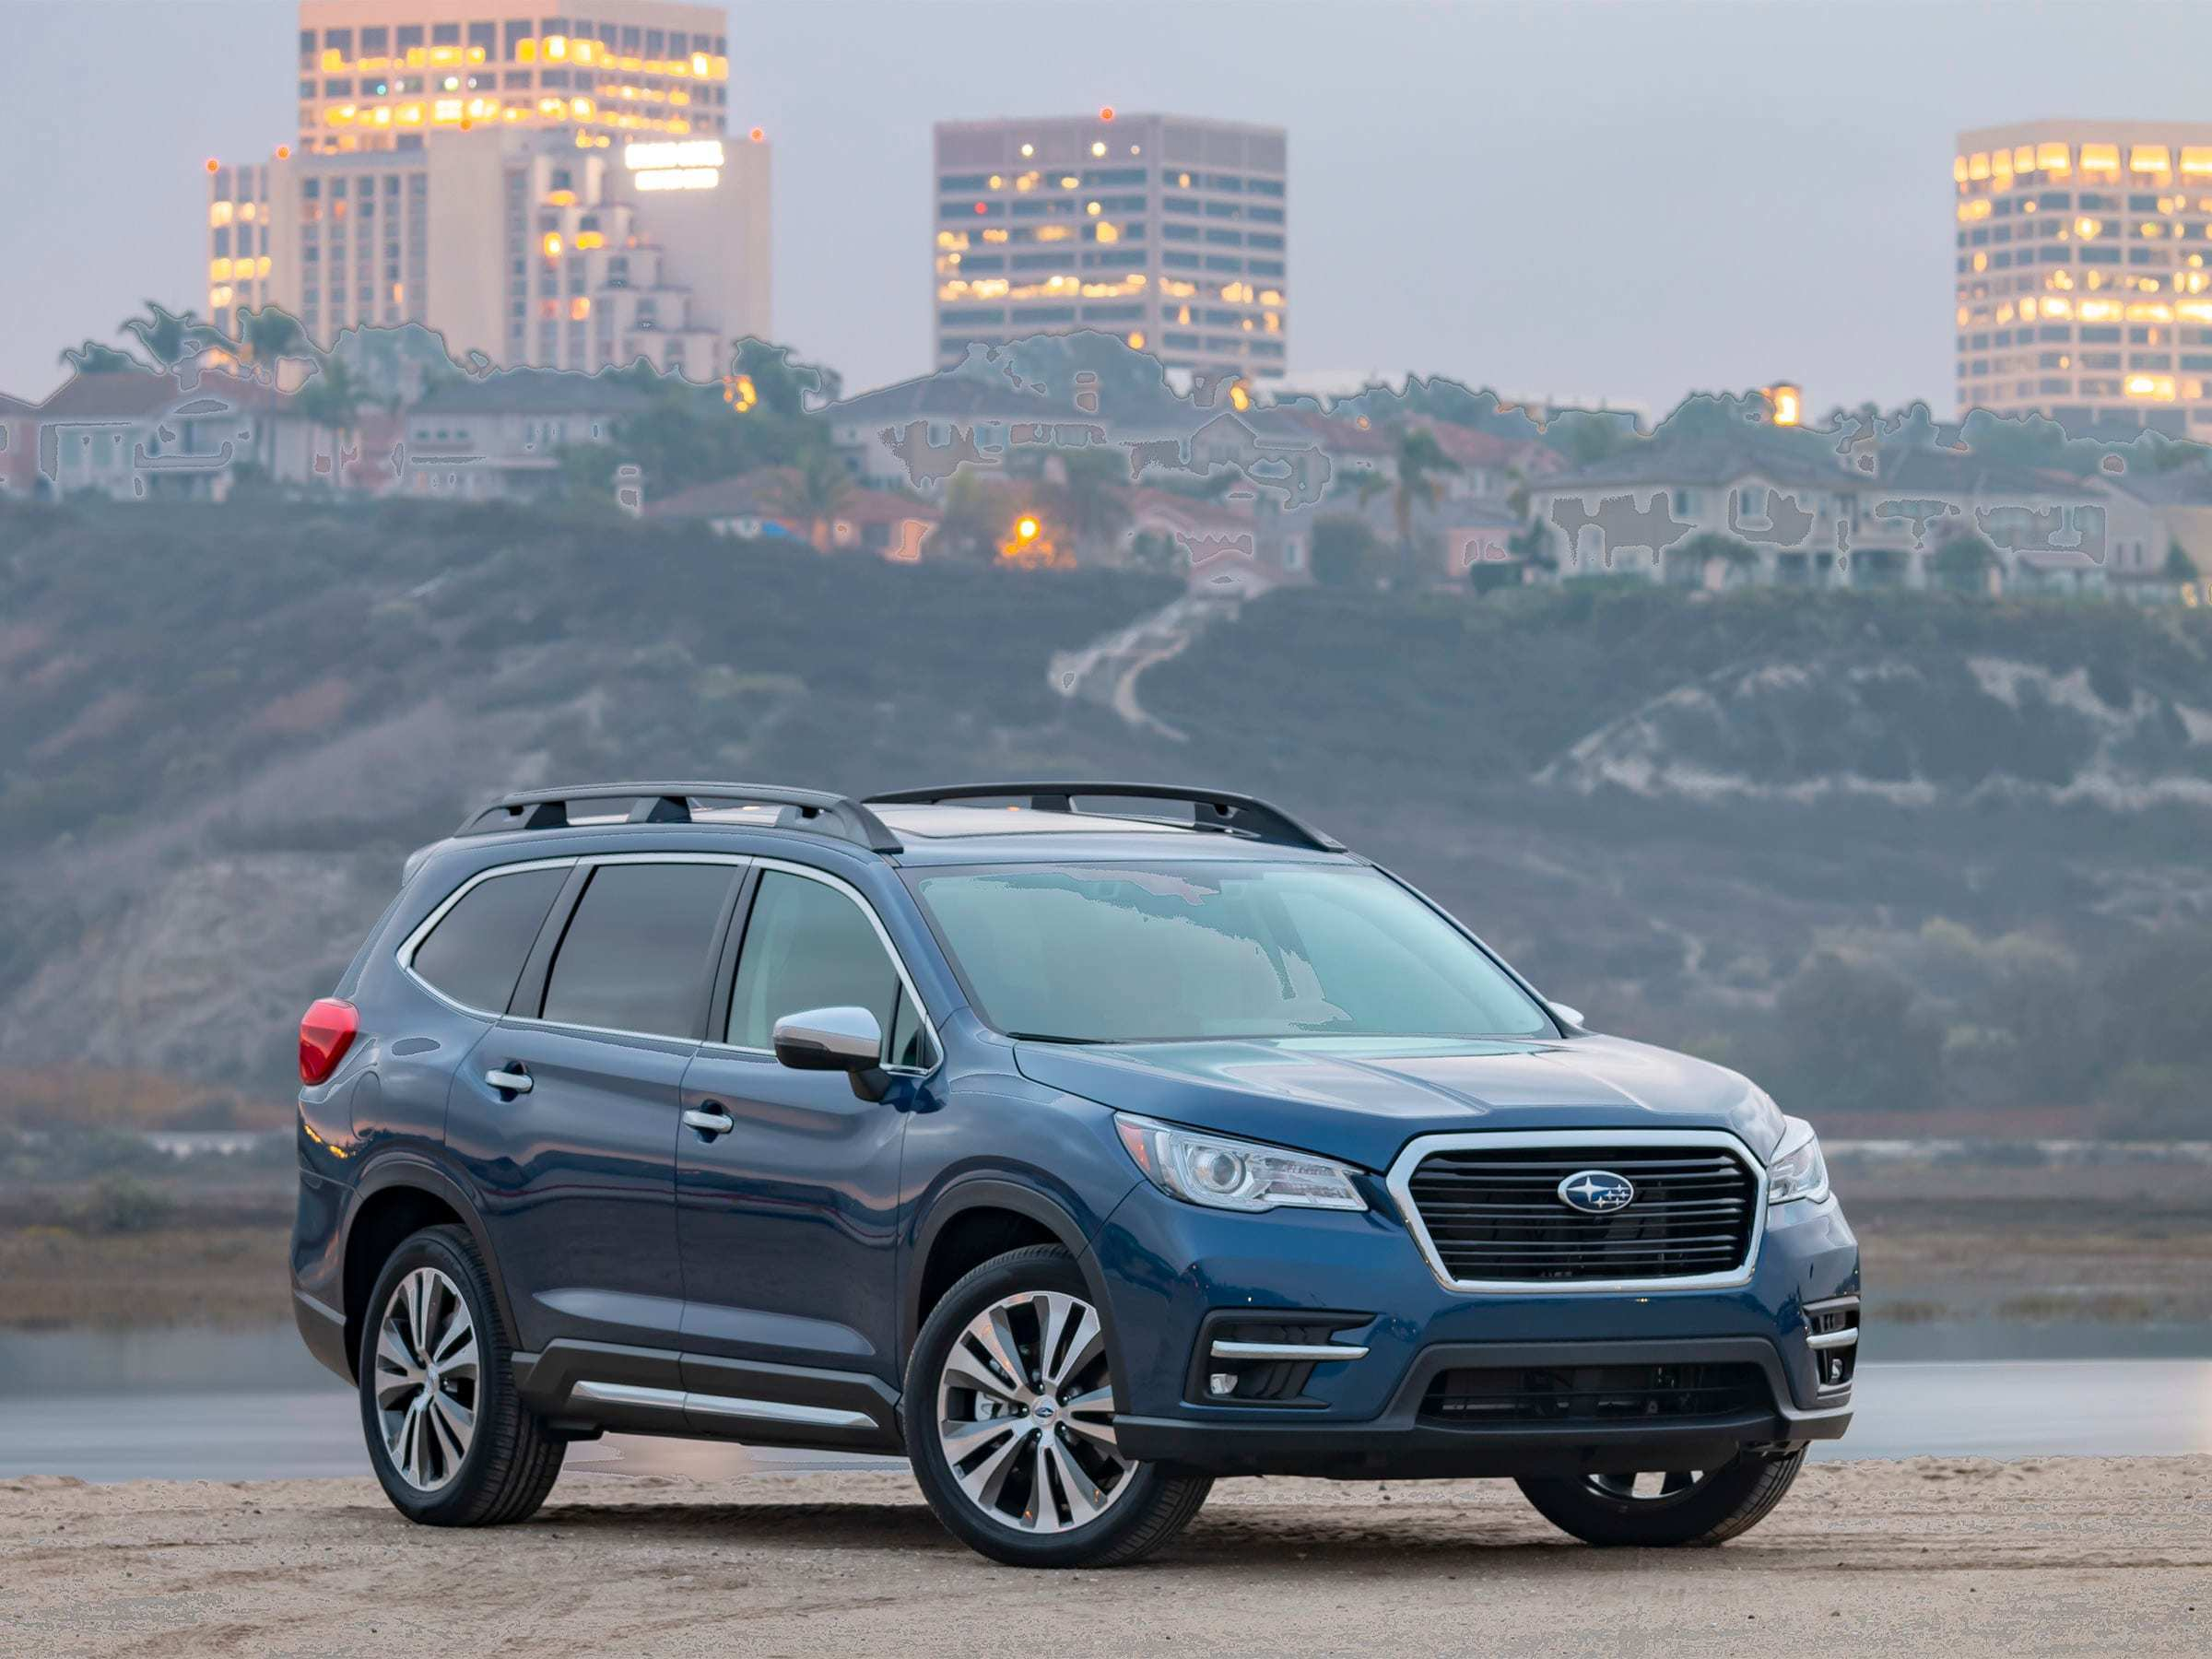 83 New 2019 Subaru Ascent 0 60 Overview for 2019 Subaru Ascent 0 60